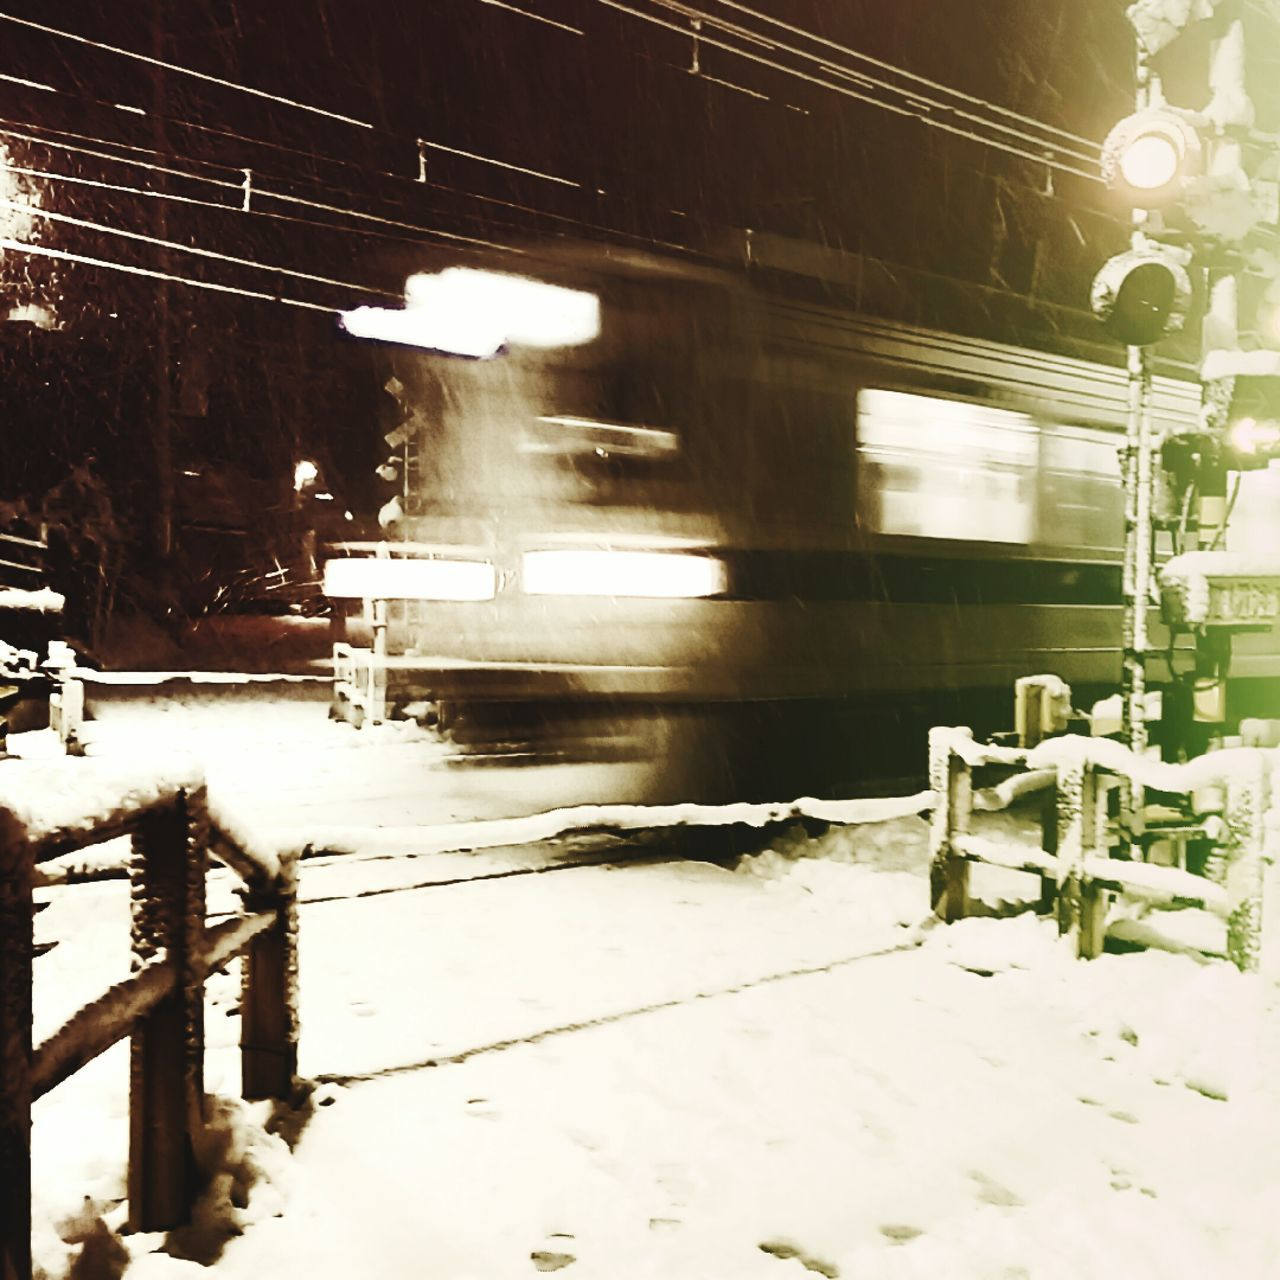 winter, snow, cold temperature, train - vehicle, weather, rail transportation, transportation, night, illuminated, mode of transport, public transportation, no people, outdoors, motion, railroad track, snowing, nature